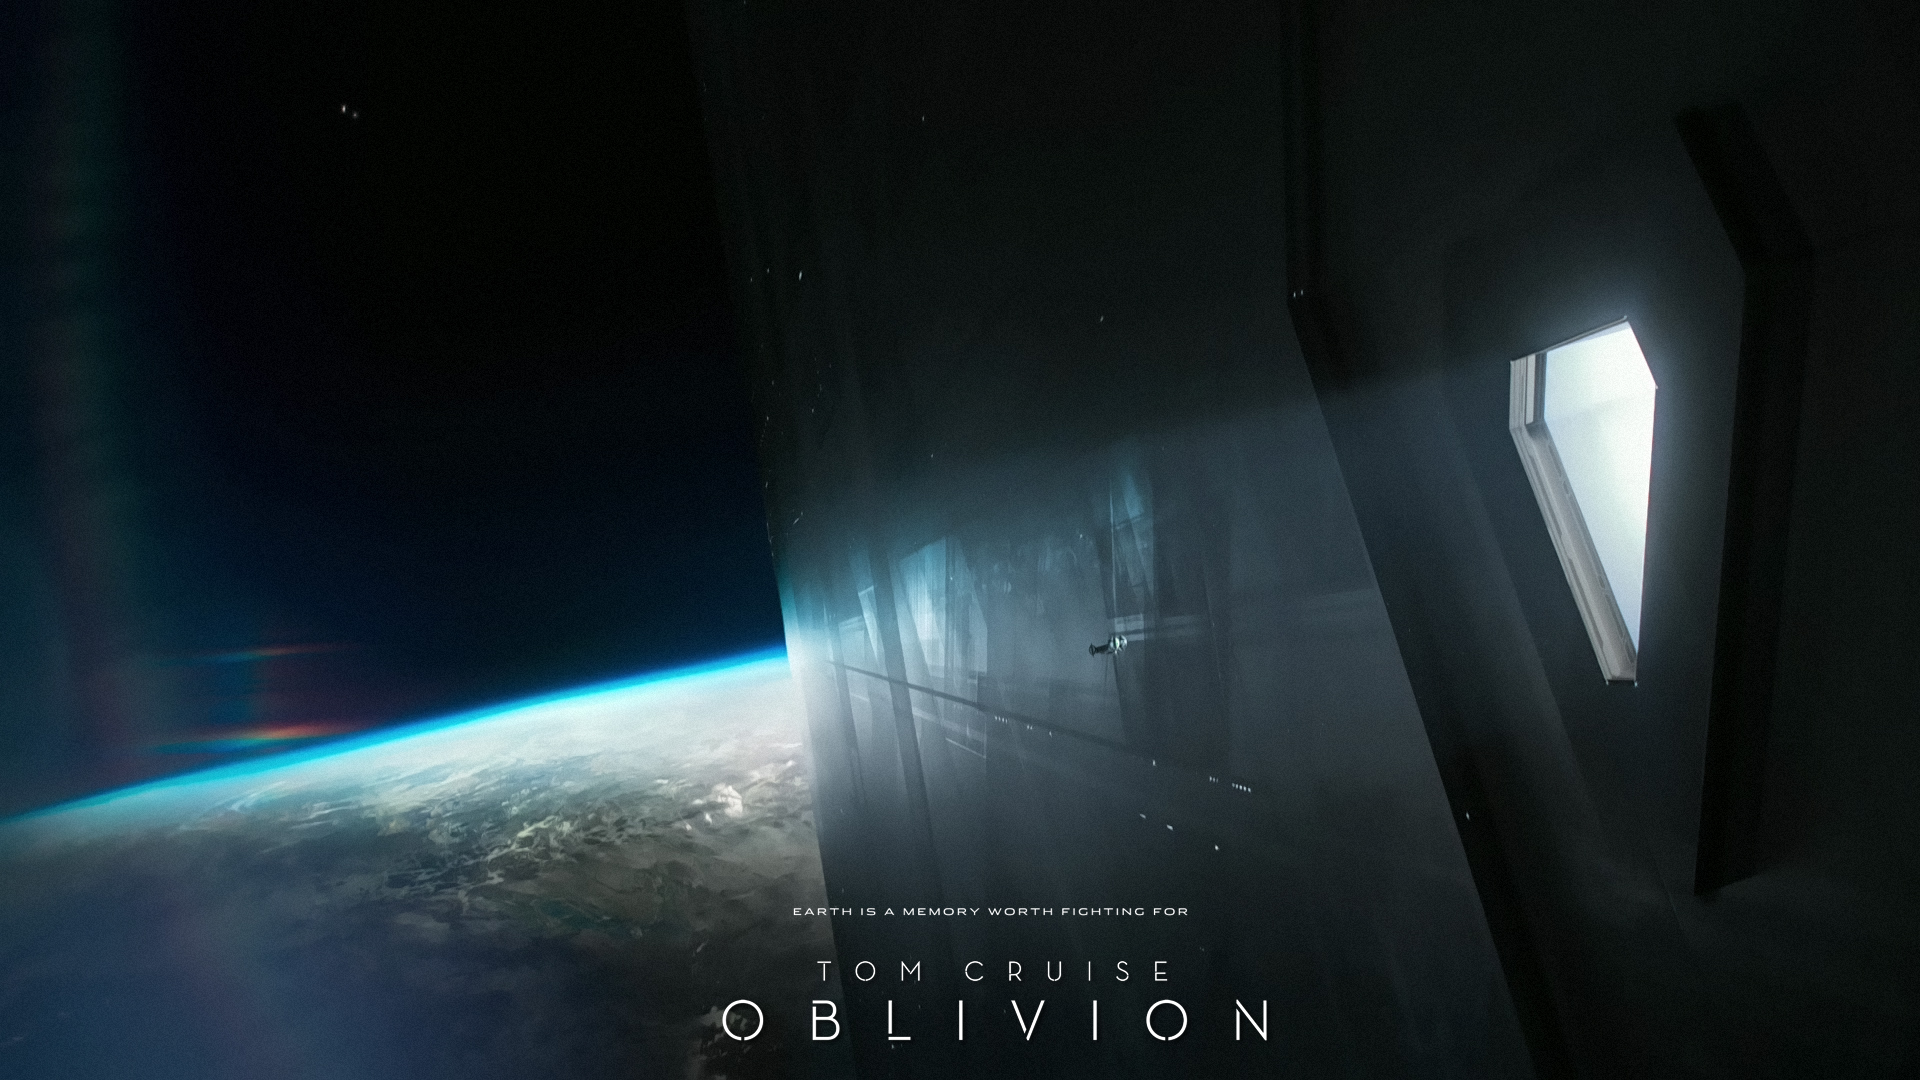 20 HD wallpapersscreenshots of quotOblivionquot with Tom Cruise 1920x1080